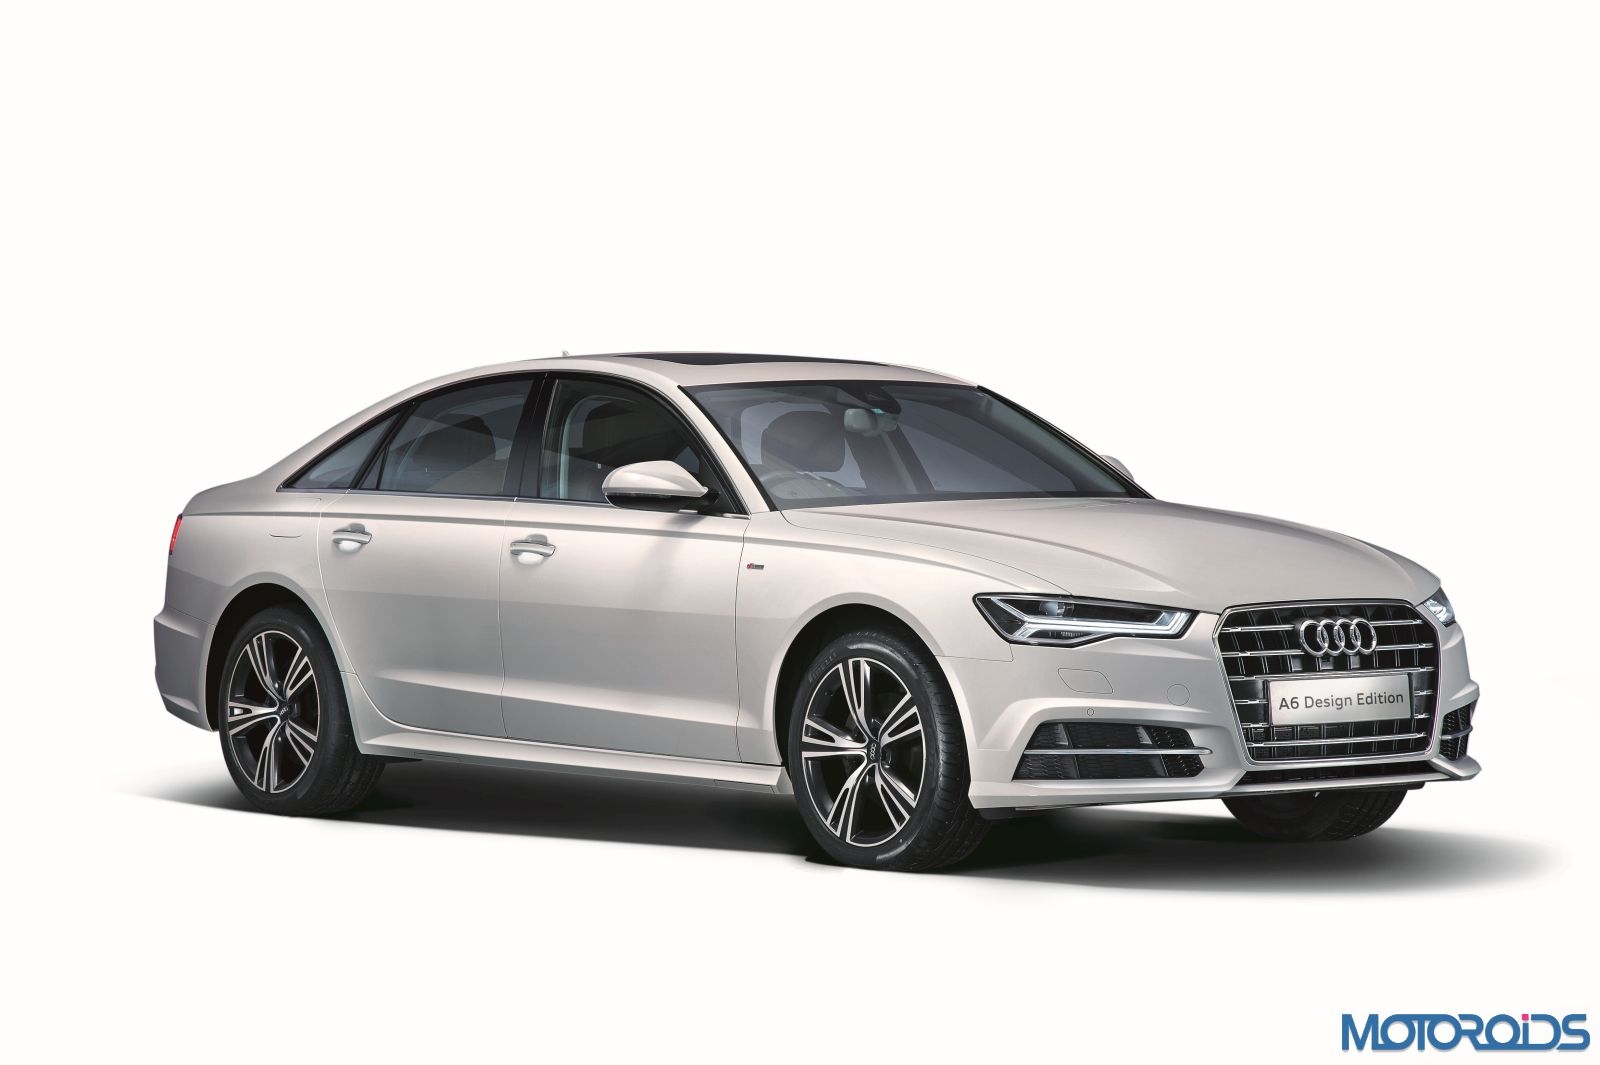 audi q7 and a6 design edition introduced in india motoroids. Black Bedroom Furniture Sets. Home Design Ideas